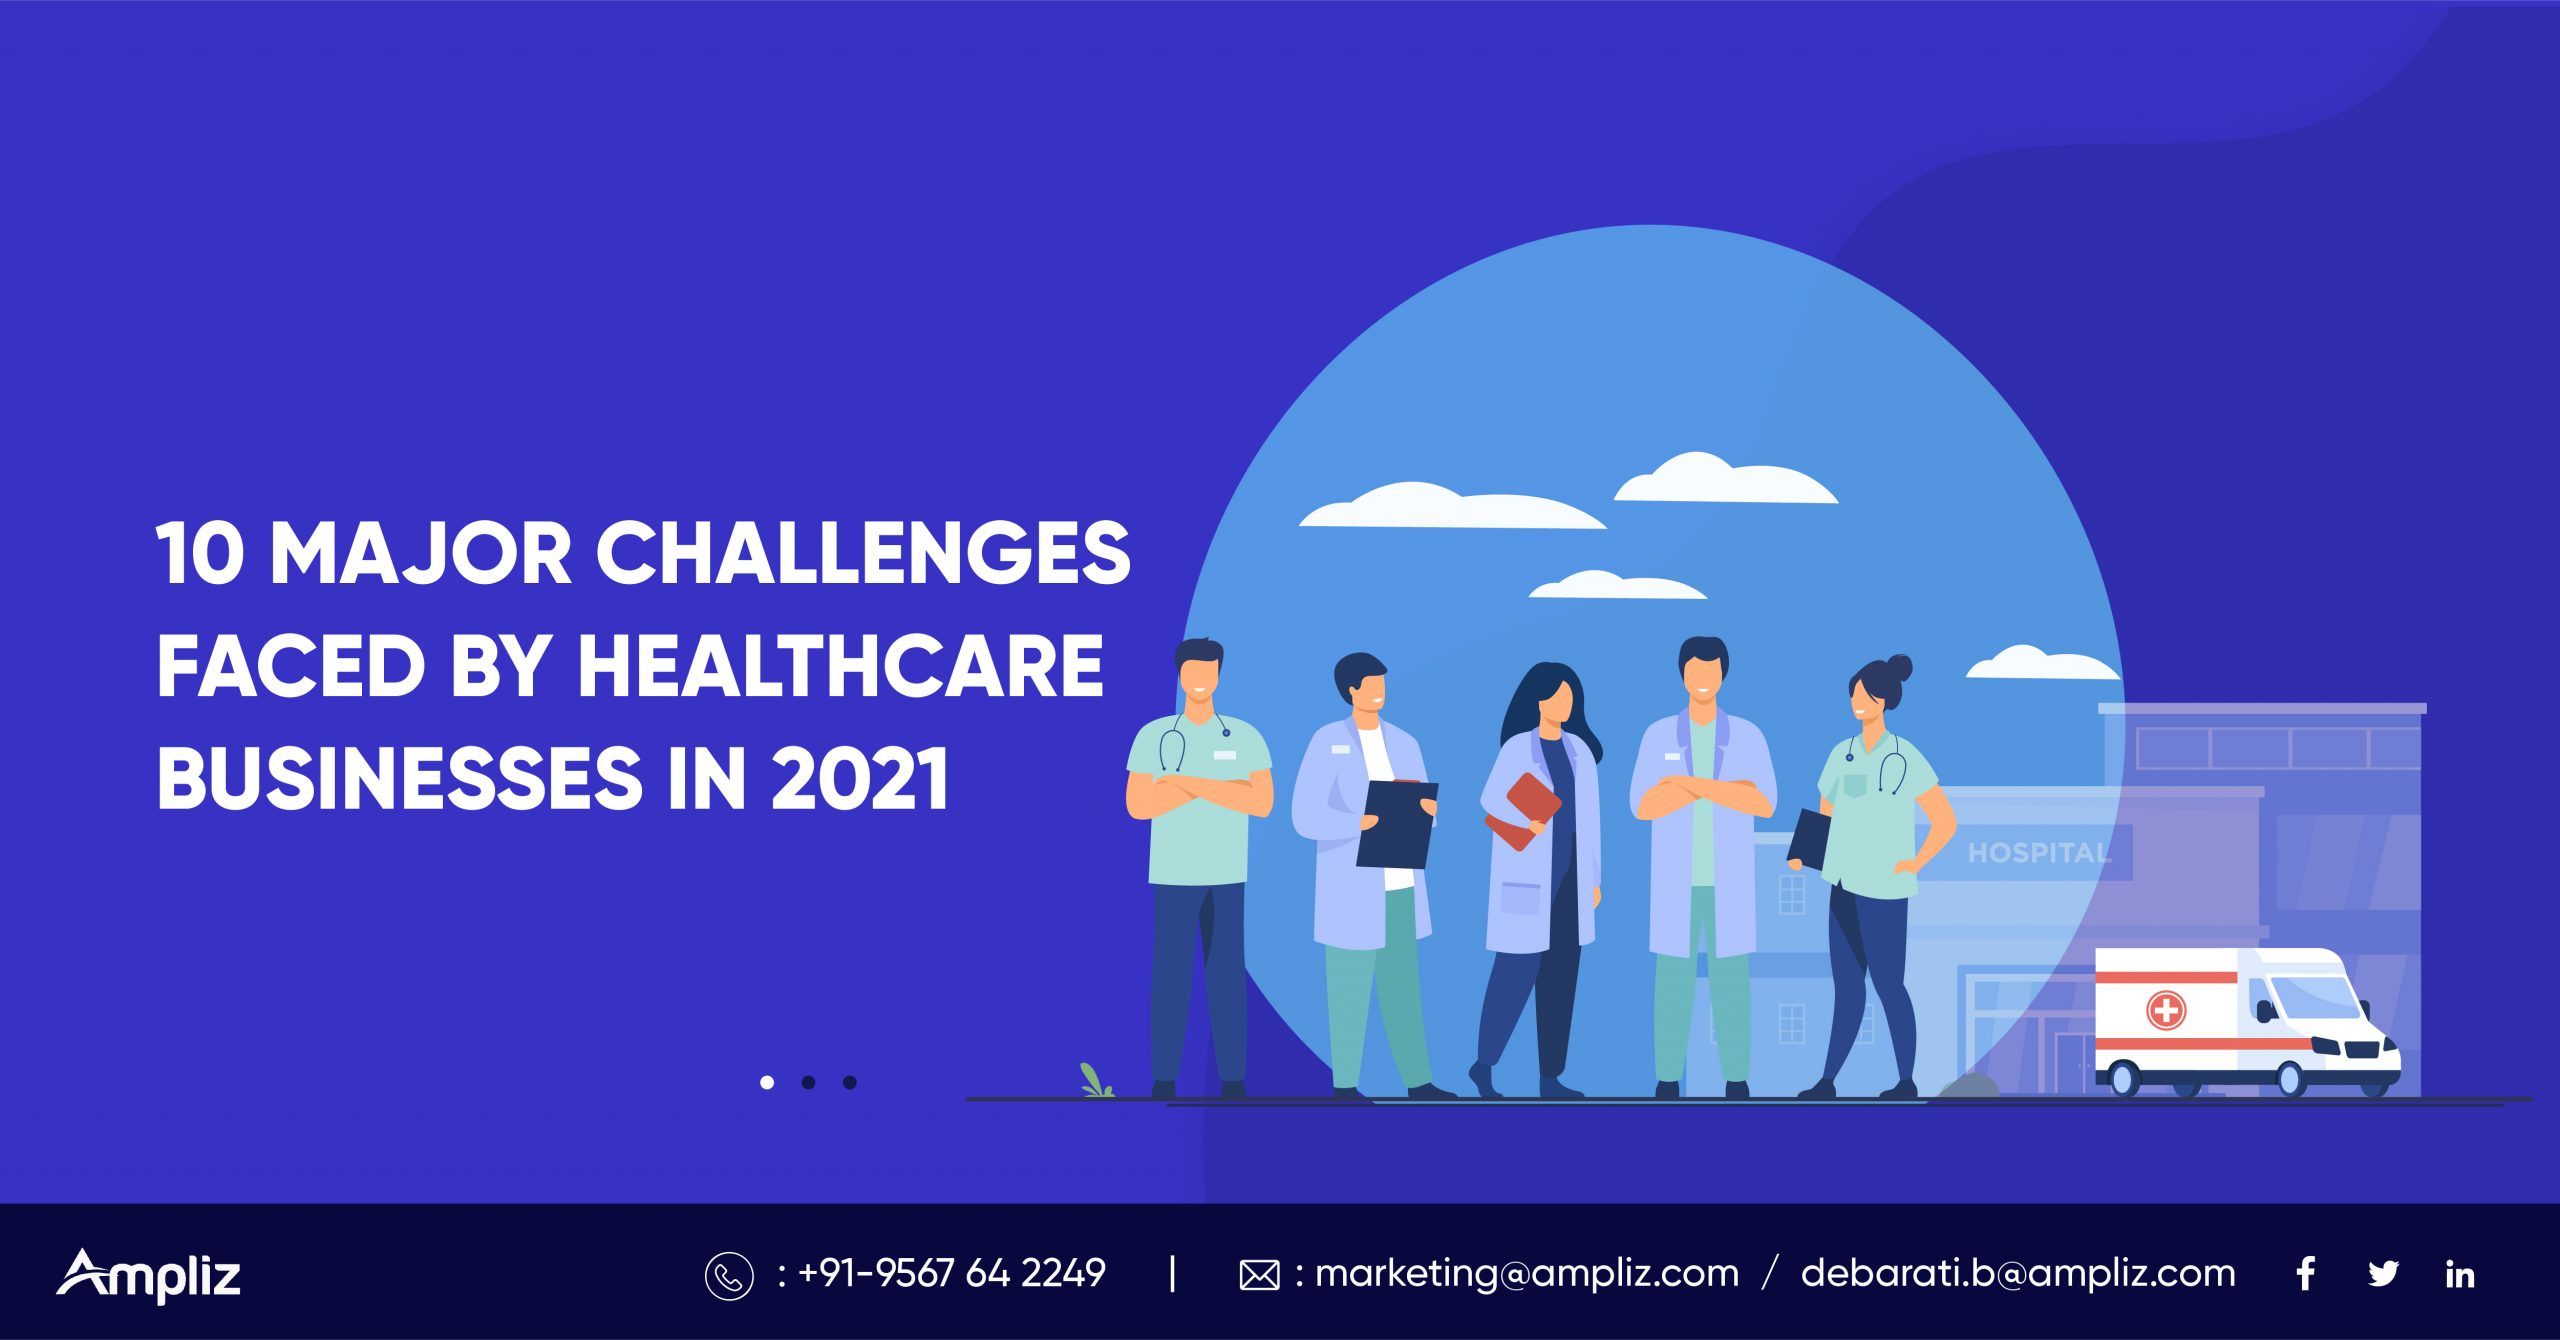 10 Major Challenges Faced by Healthcare in 2021